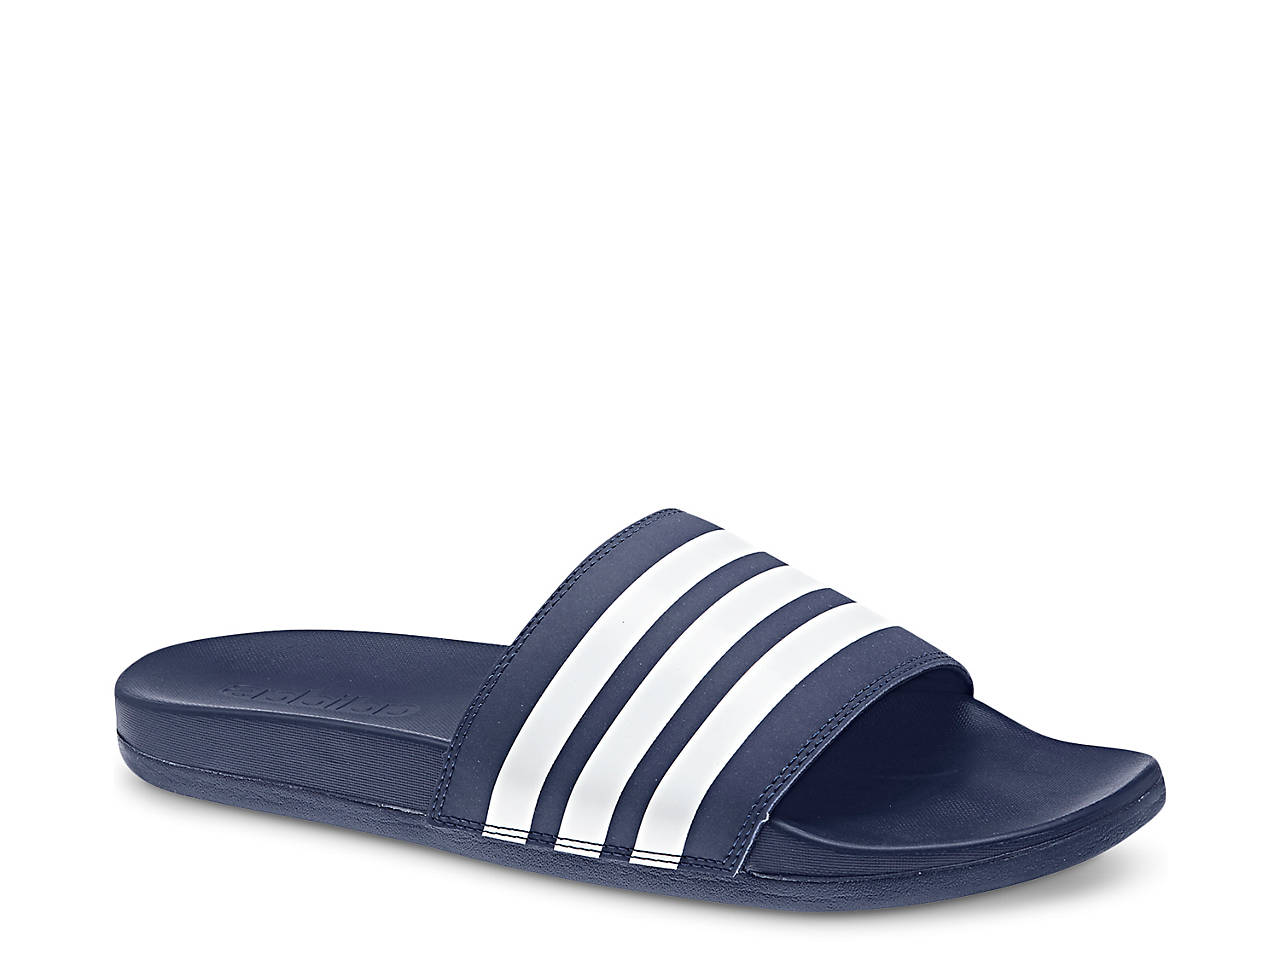 d3977a920567 adidas Adilette CF+ Slide Sandal - Men s Men s Shoes